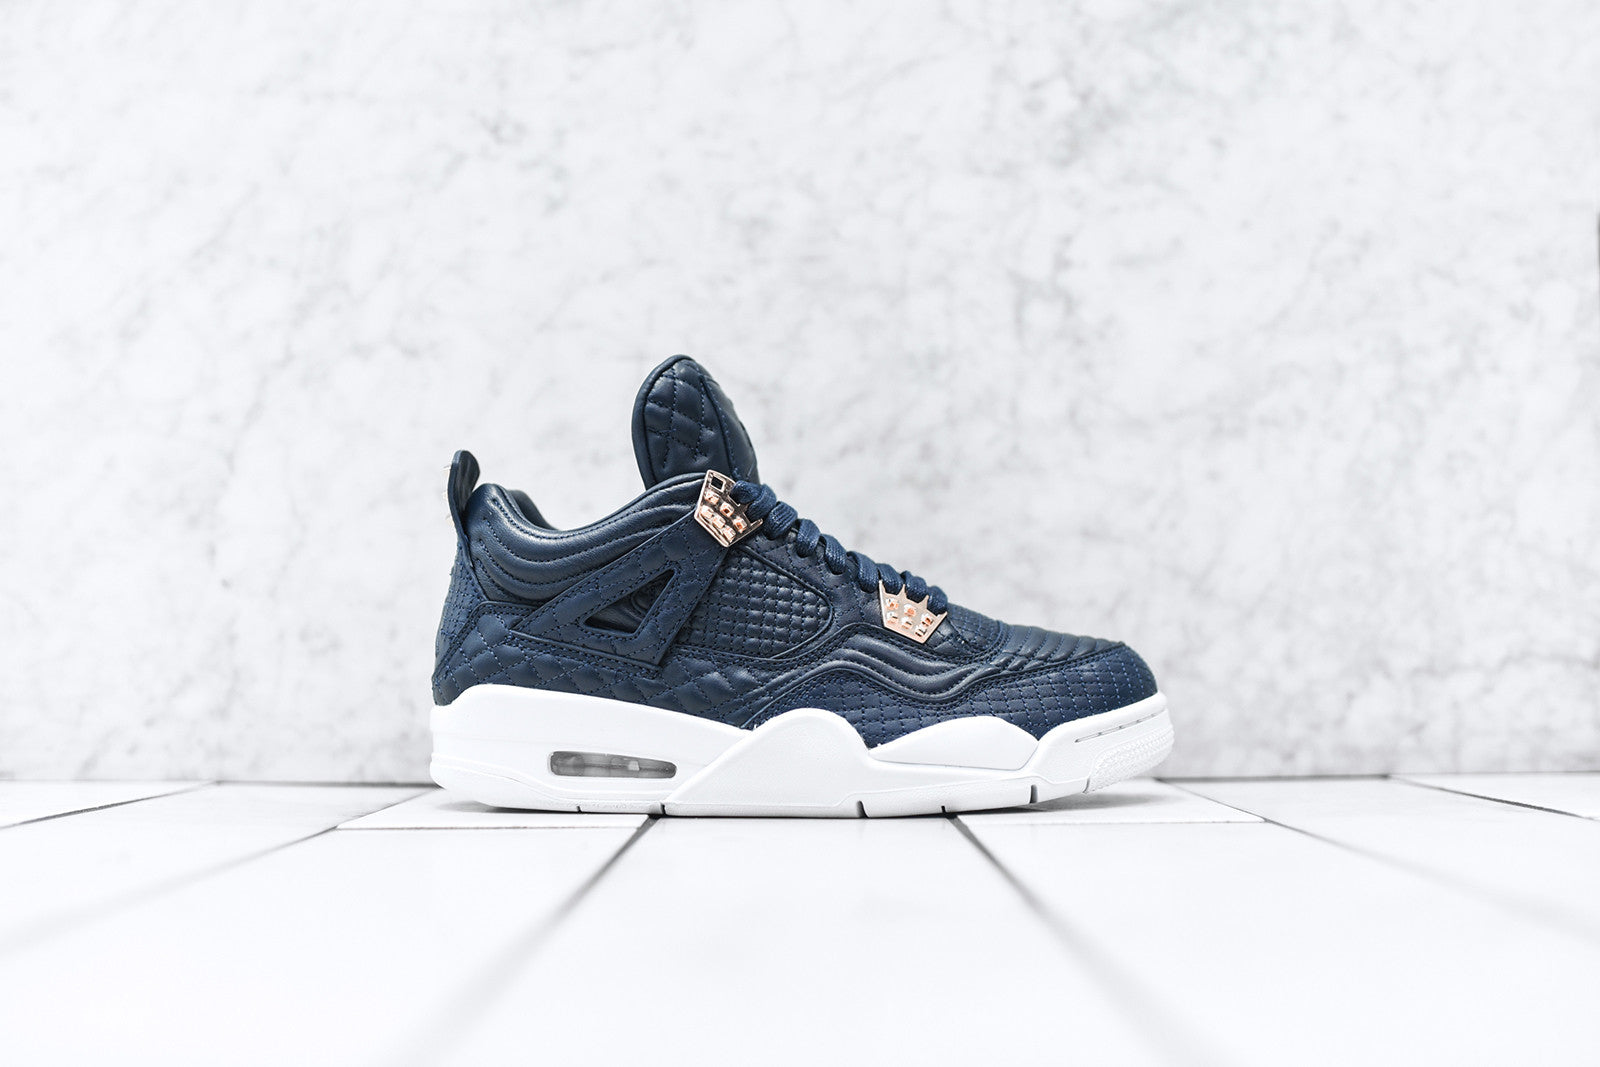 Nike Air Jordan 4 Retro PRM - Navy